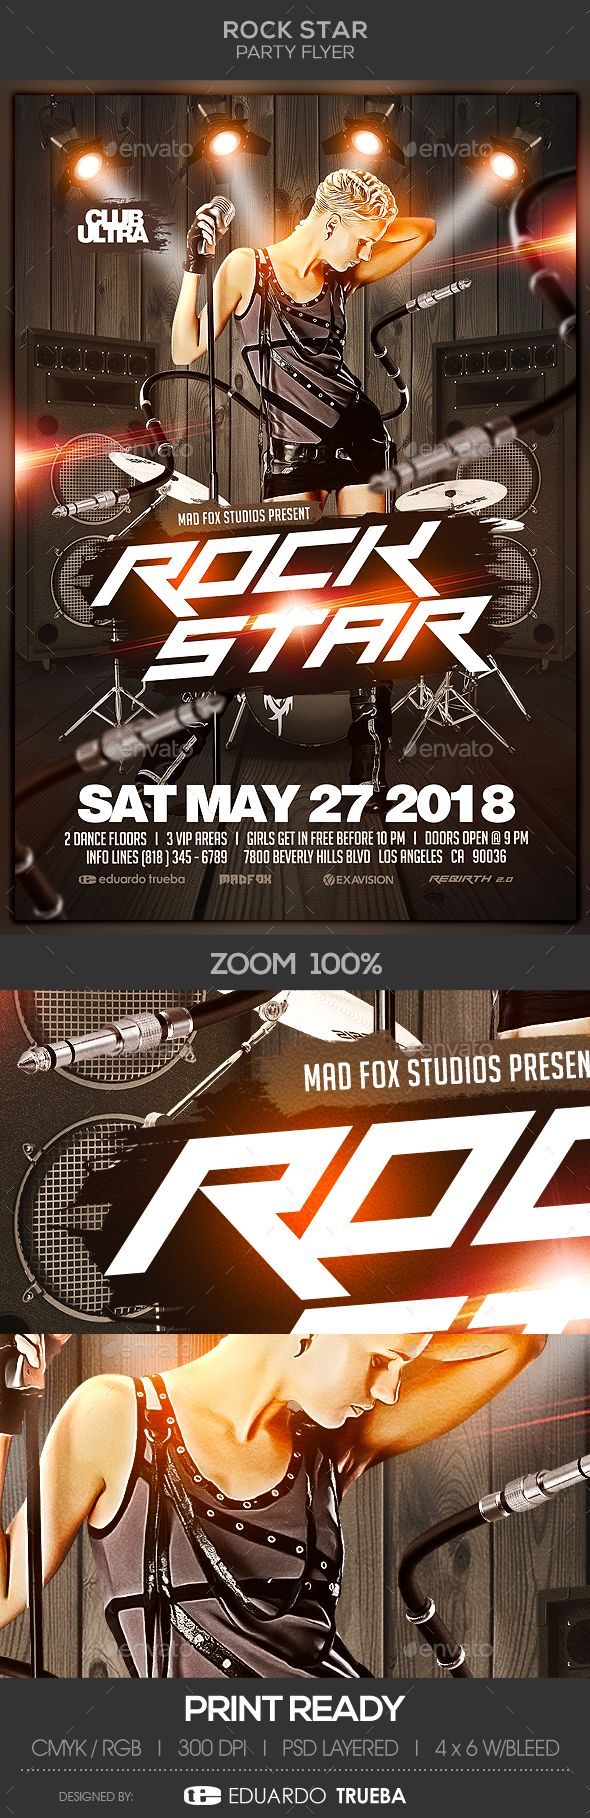 rock star party flyer template all text is editable flyer size 4